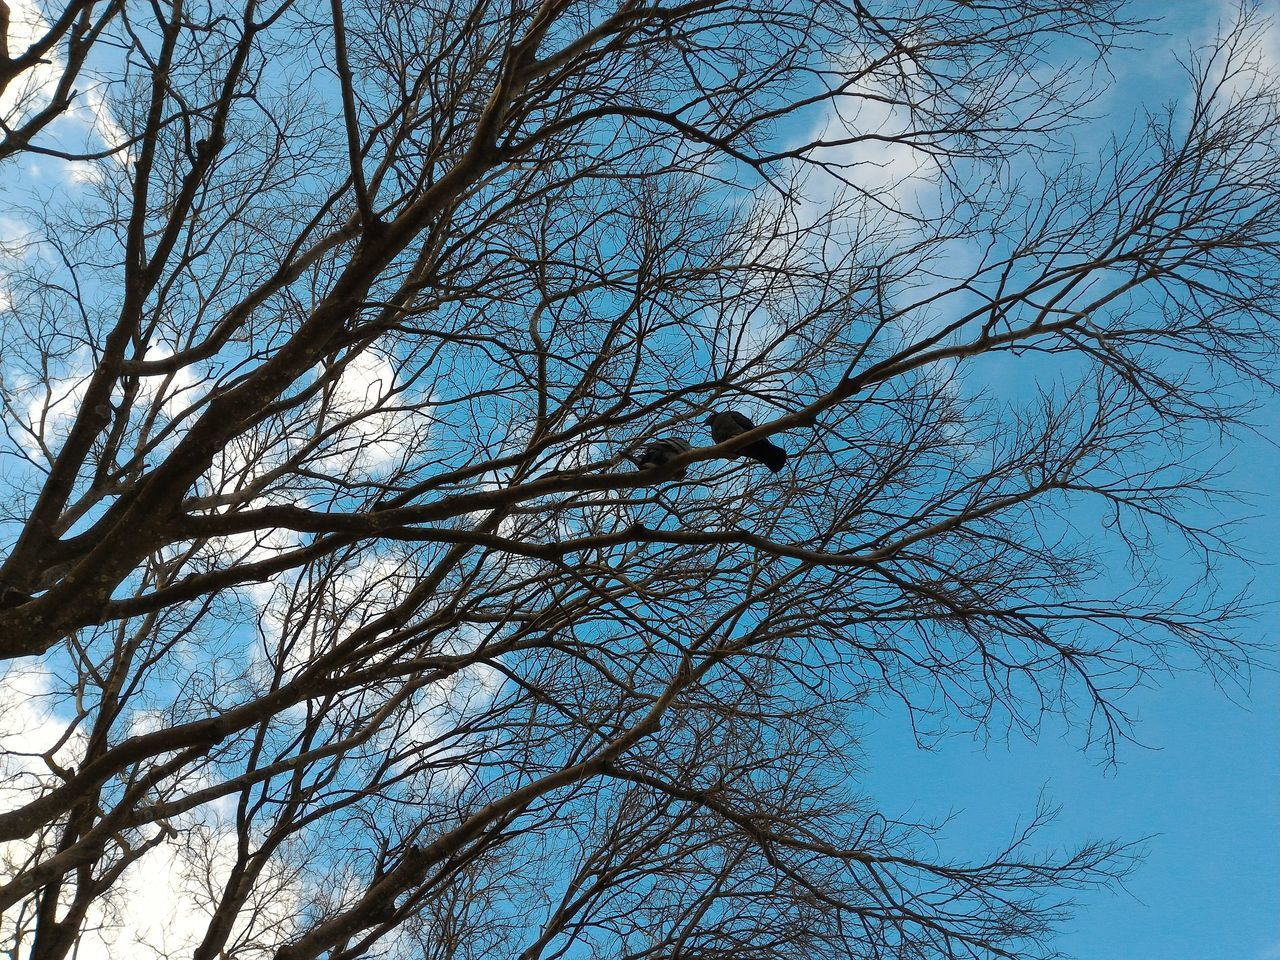 bare tree, tree, animals in the wild, bird, branch, animal themes, animal wildlife, nature, low angle view, no people, one animal, outdoors, sky, day, beauty in nature, clear sky, blue, perching